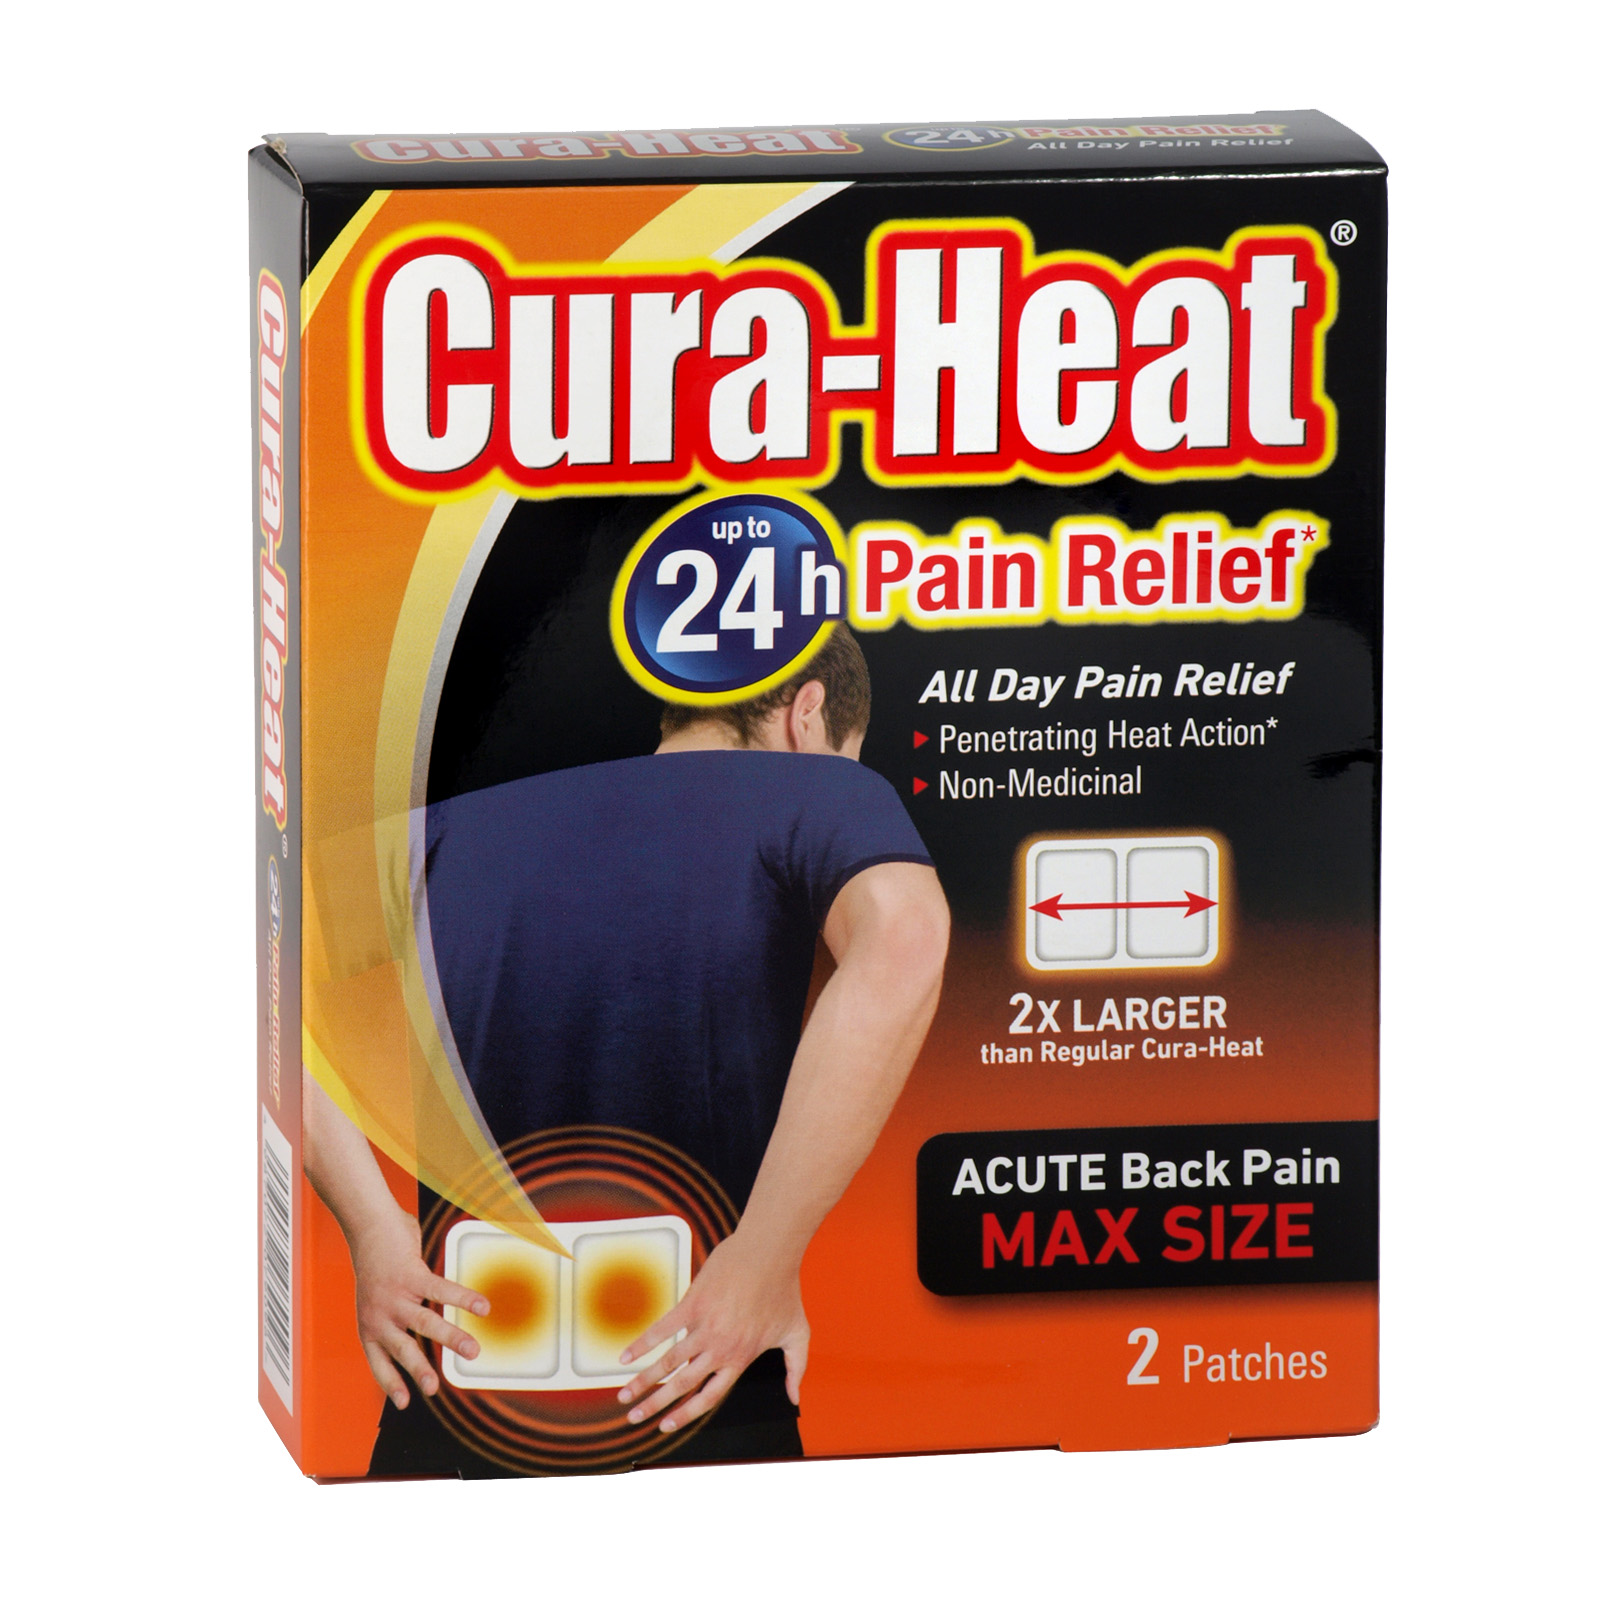 CURA-HEAT ACUTE BACK PAIN 2 PATCHES X5